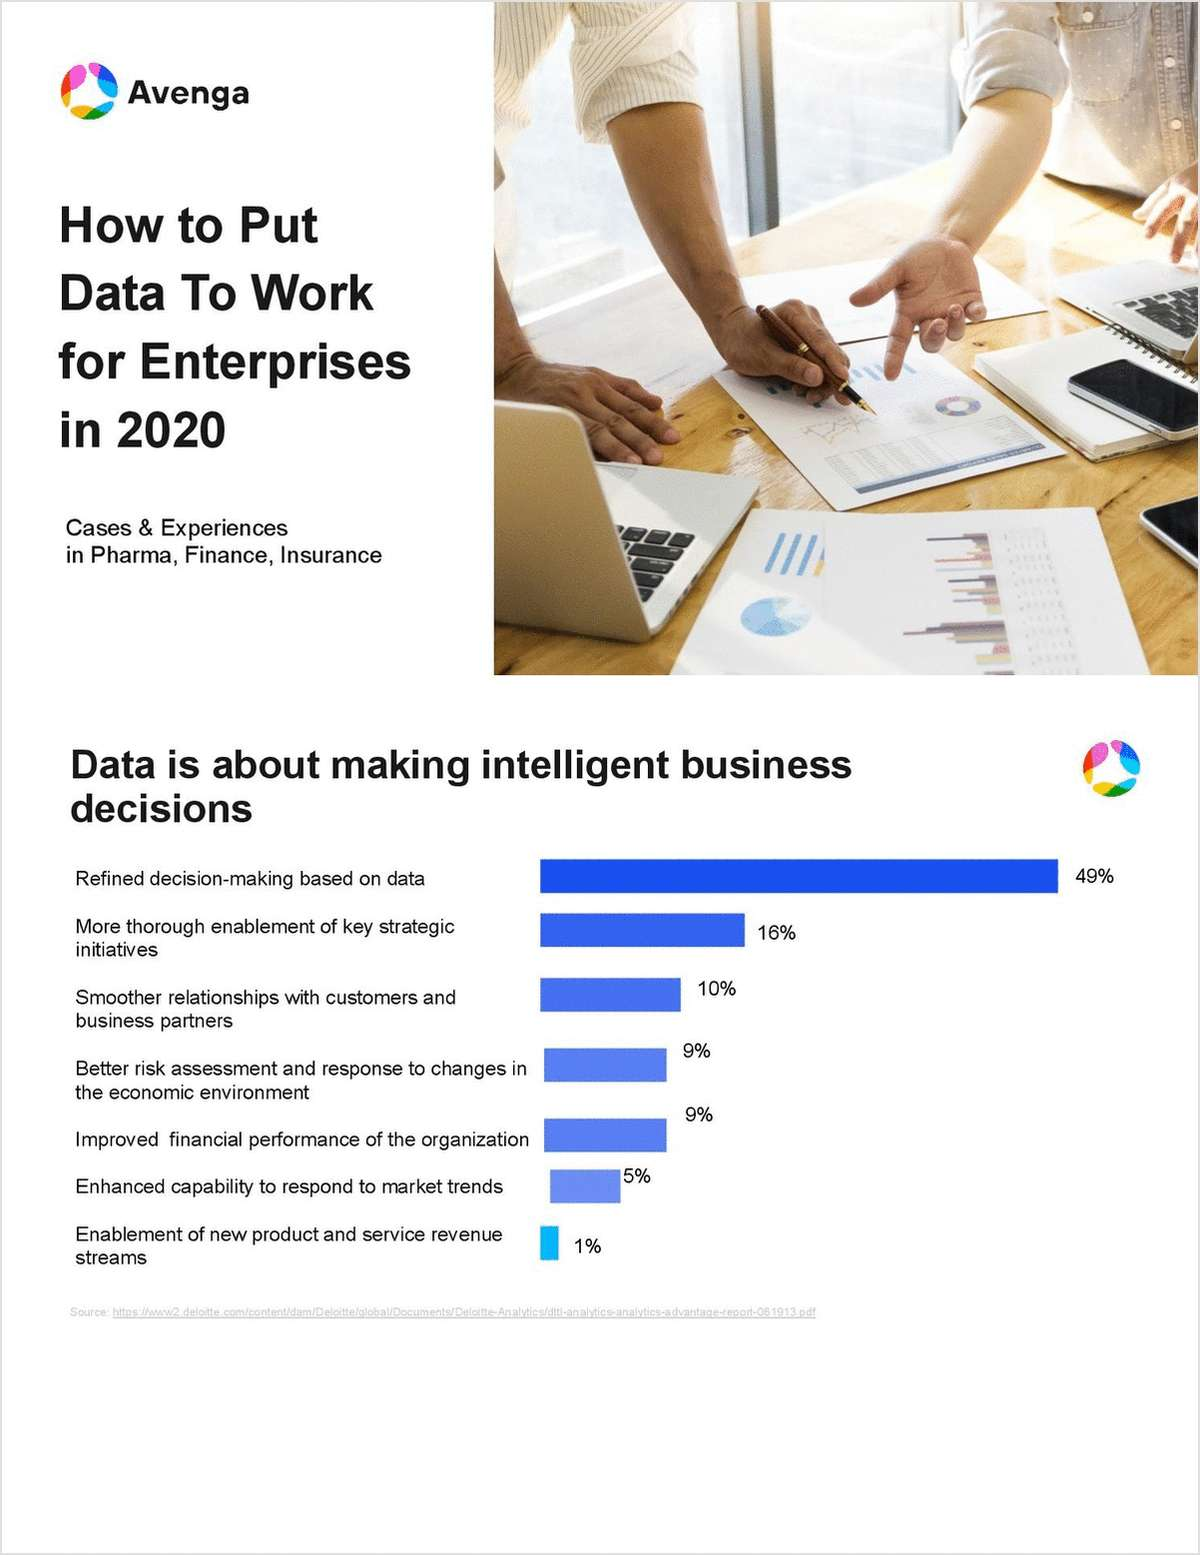 How to Put Data To Work for Enterprises in 2020